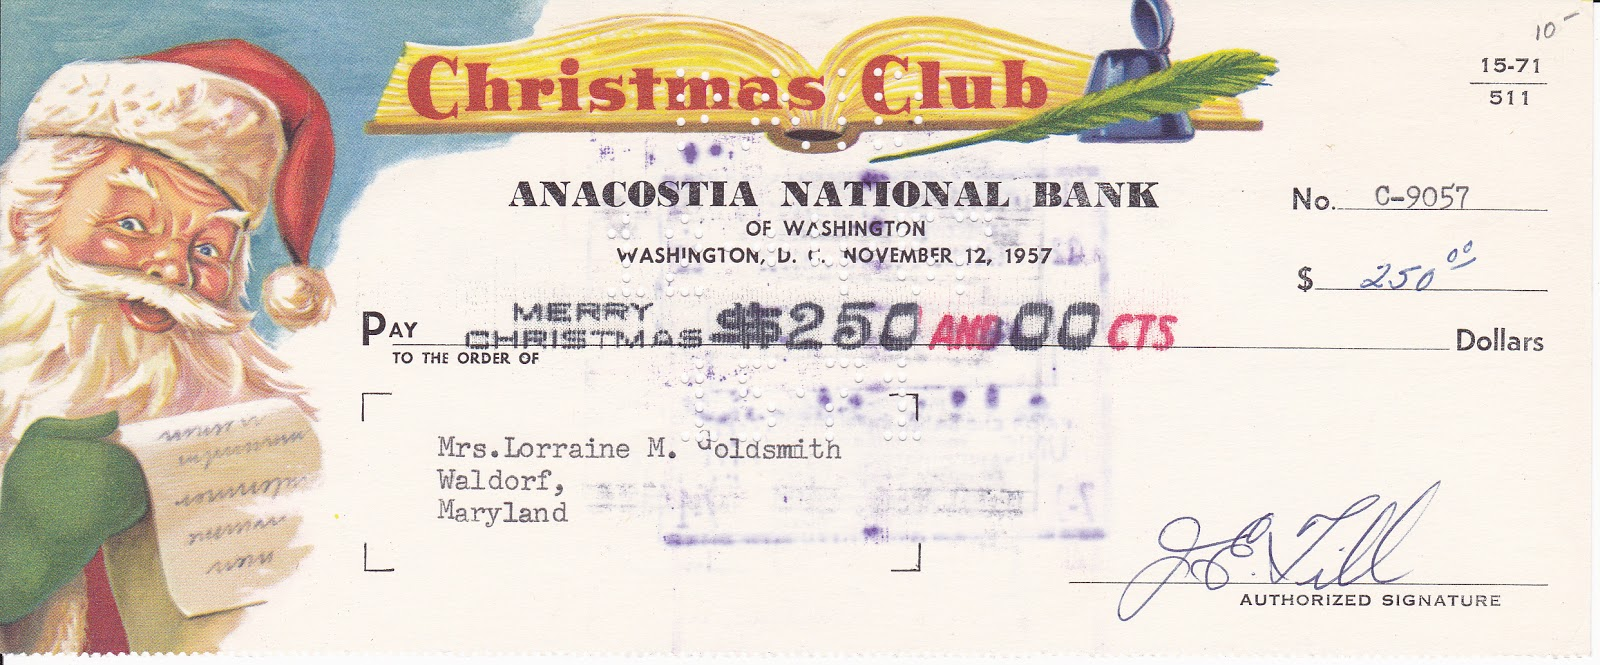 trust companys christmas savings fund in 1909 it drew 350 participants whose average account balance as the christmas shopping - Christmas Club Account